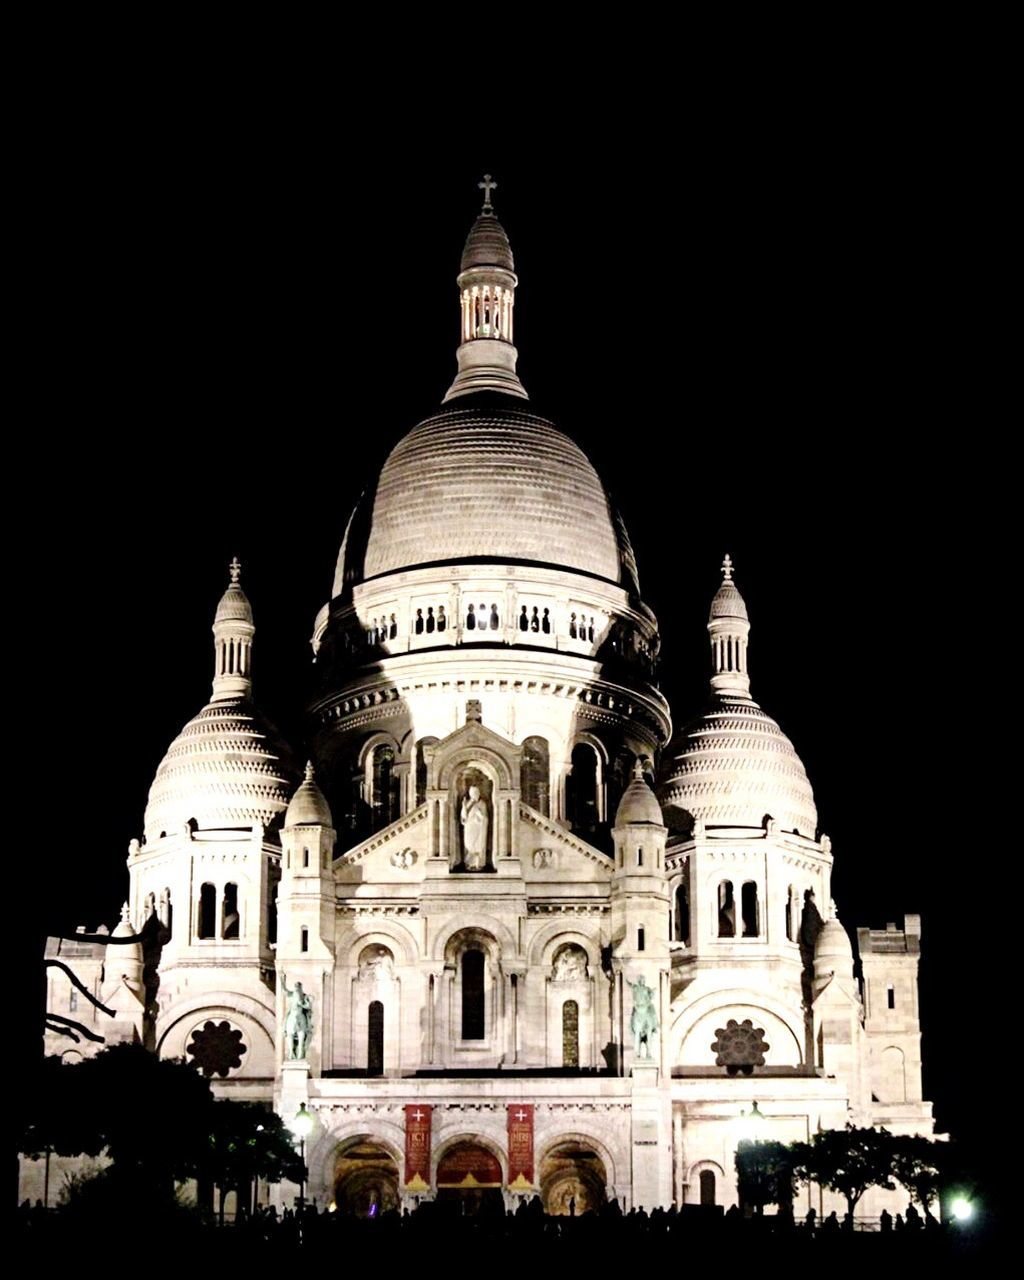 dome, architecture, religion, place of worship, building exterior, spirituality, built structure, travel destinations, tourism, travel, outdoors, facade, night, low angle view, large group of people, clear sky, sky, people